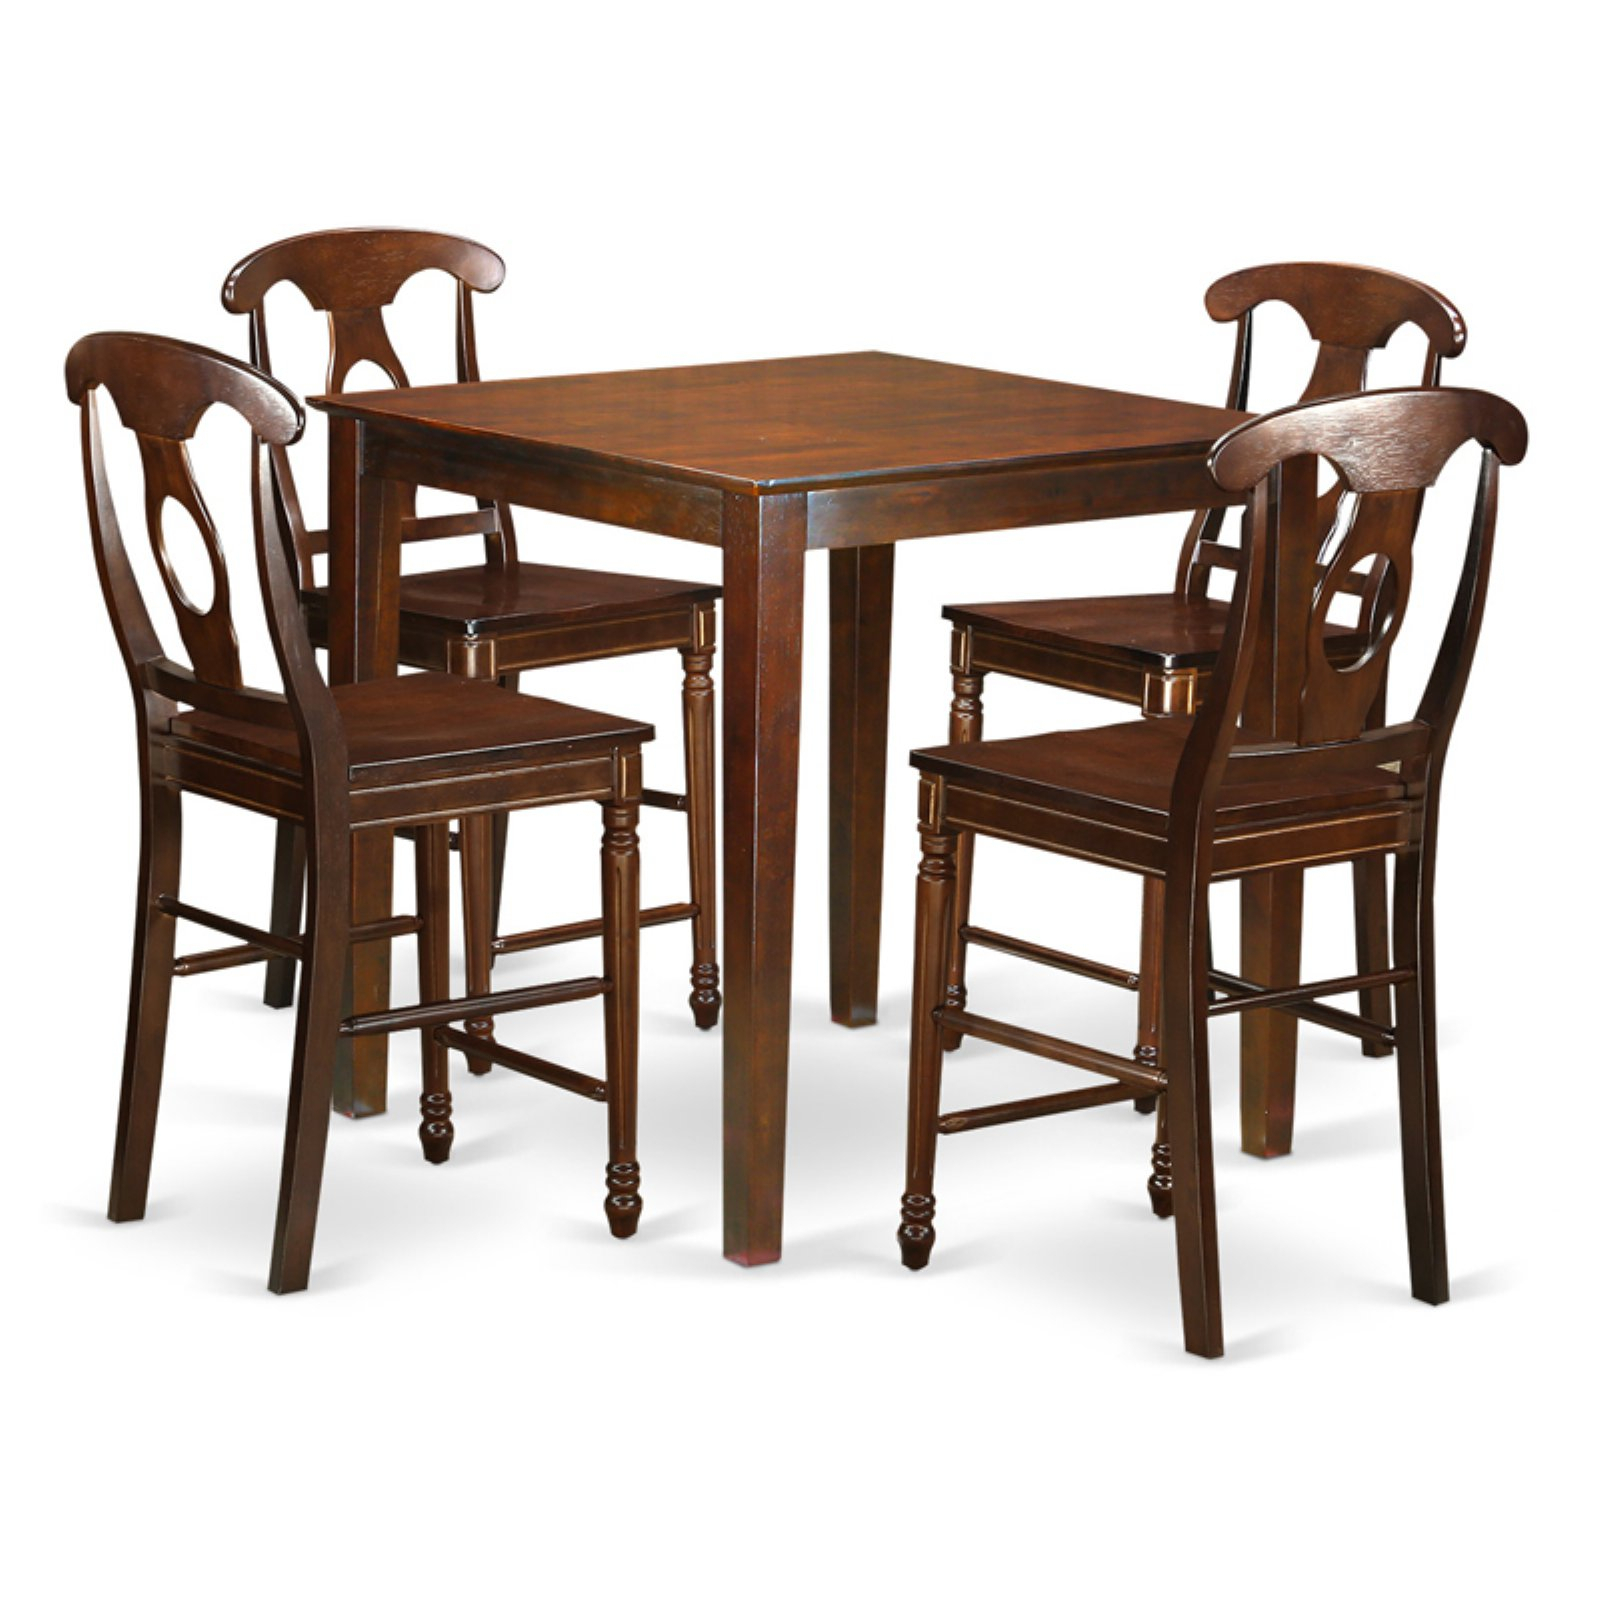 East West Furniture Vernon 5 Piece Keyhole Dining Table Set Intended For Most Current Benchwright Counter Height Tables (View 24 of 25)